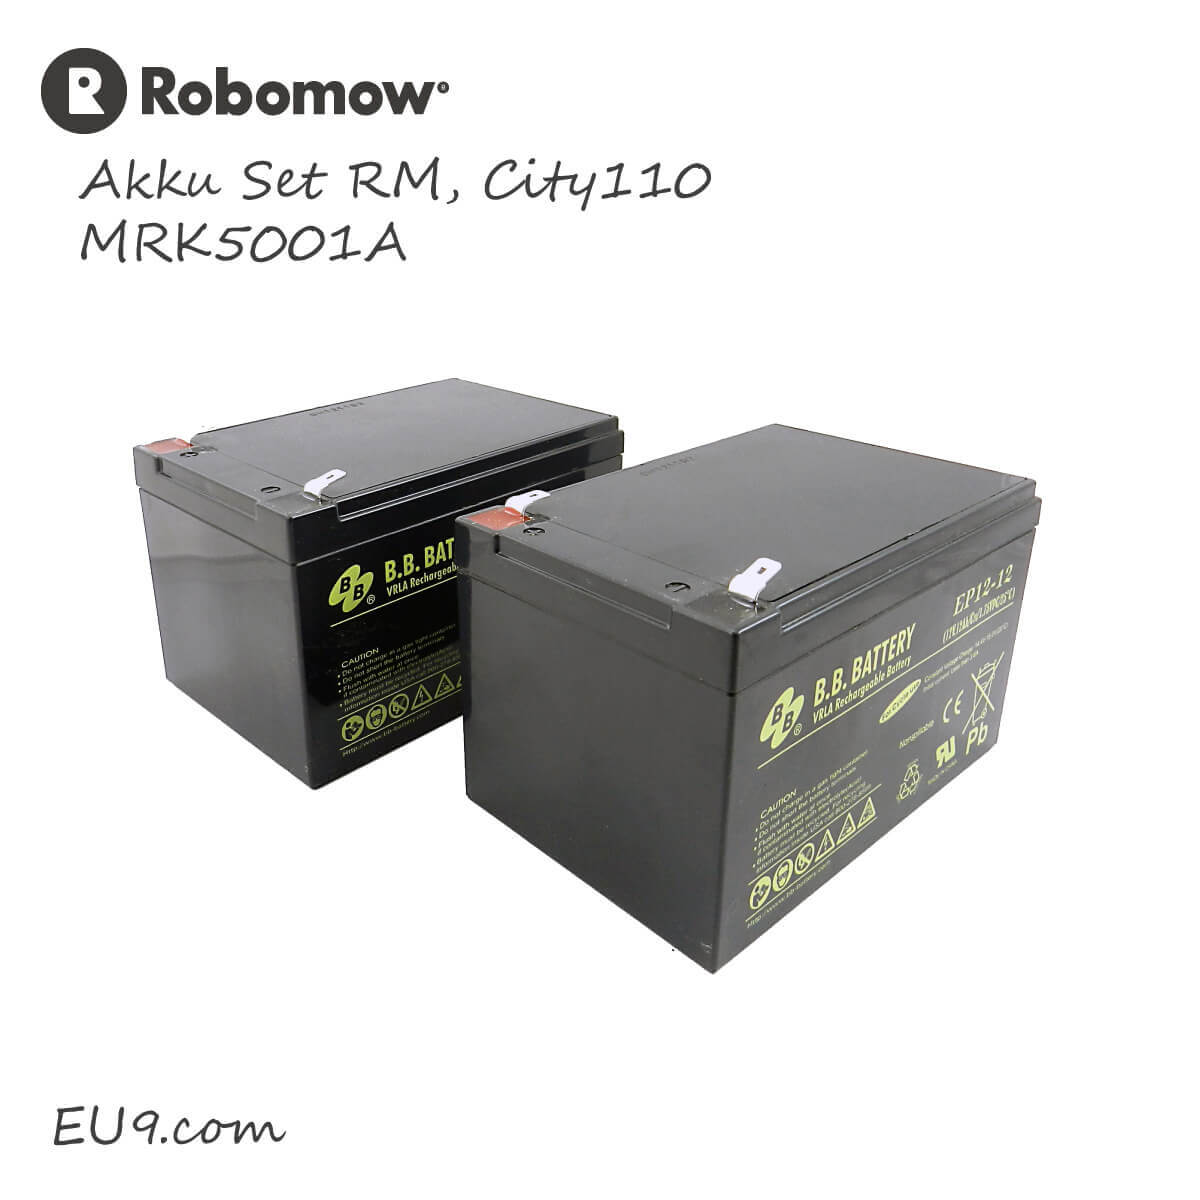 robomow hochleistungsakkus rm city110 eu9 robotics. Black Bedroom Furniture Sets. Home Design Ideas